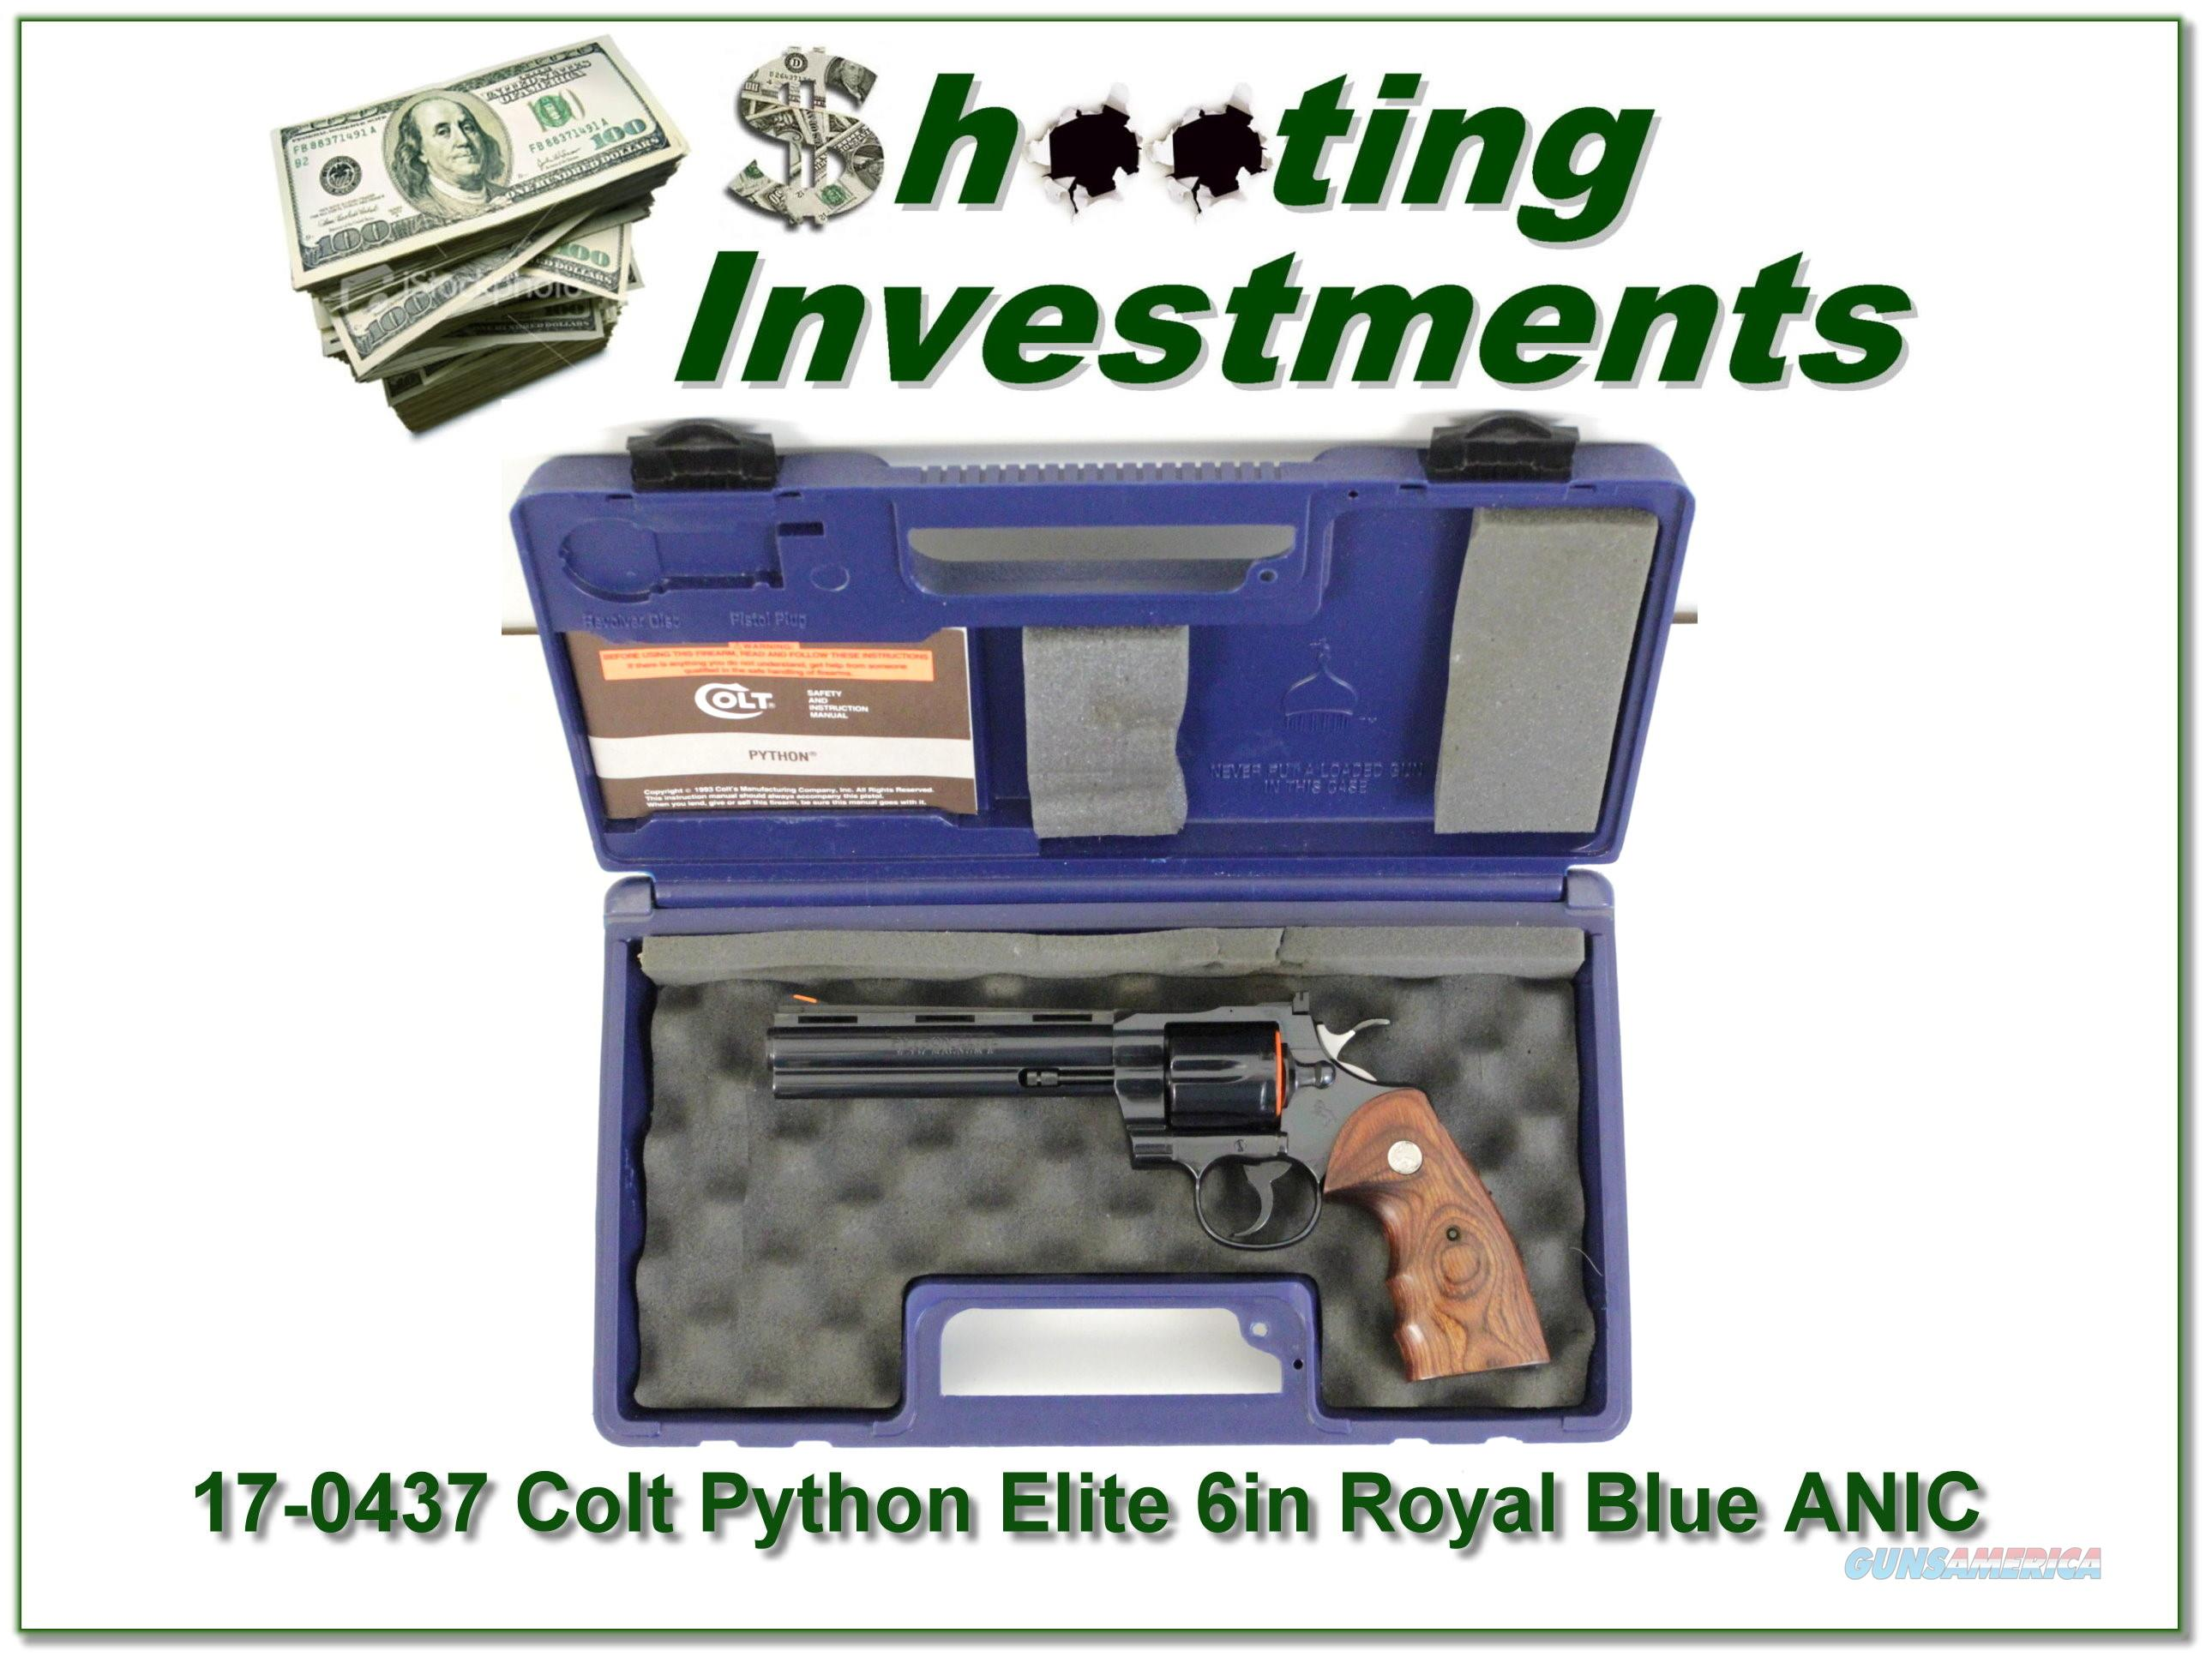 Colt Python Elite Custom Shop 6in Royal Blue NIC  Guns > Pistols > Collectible Revolvers